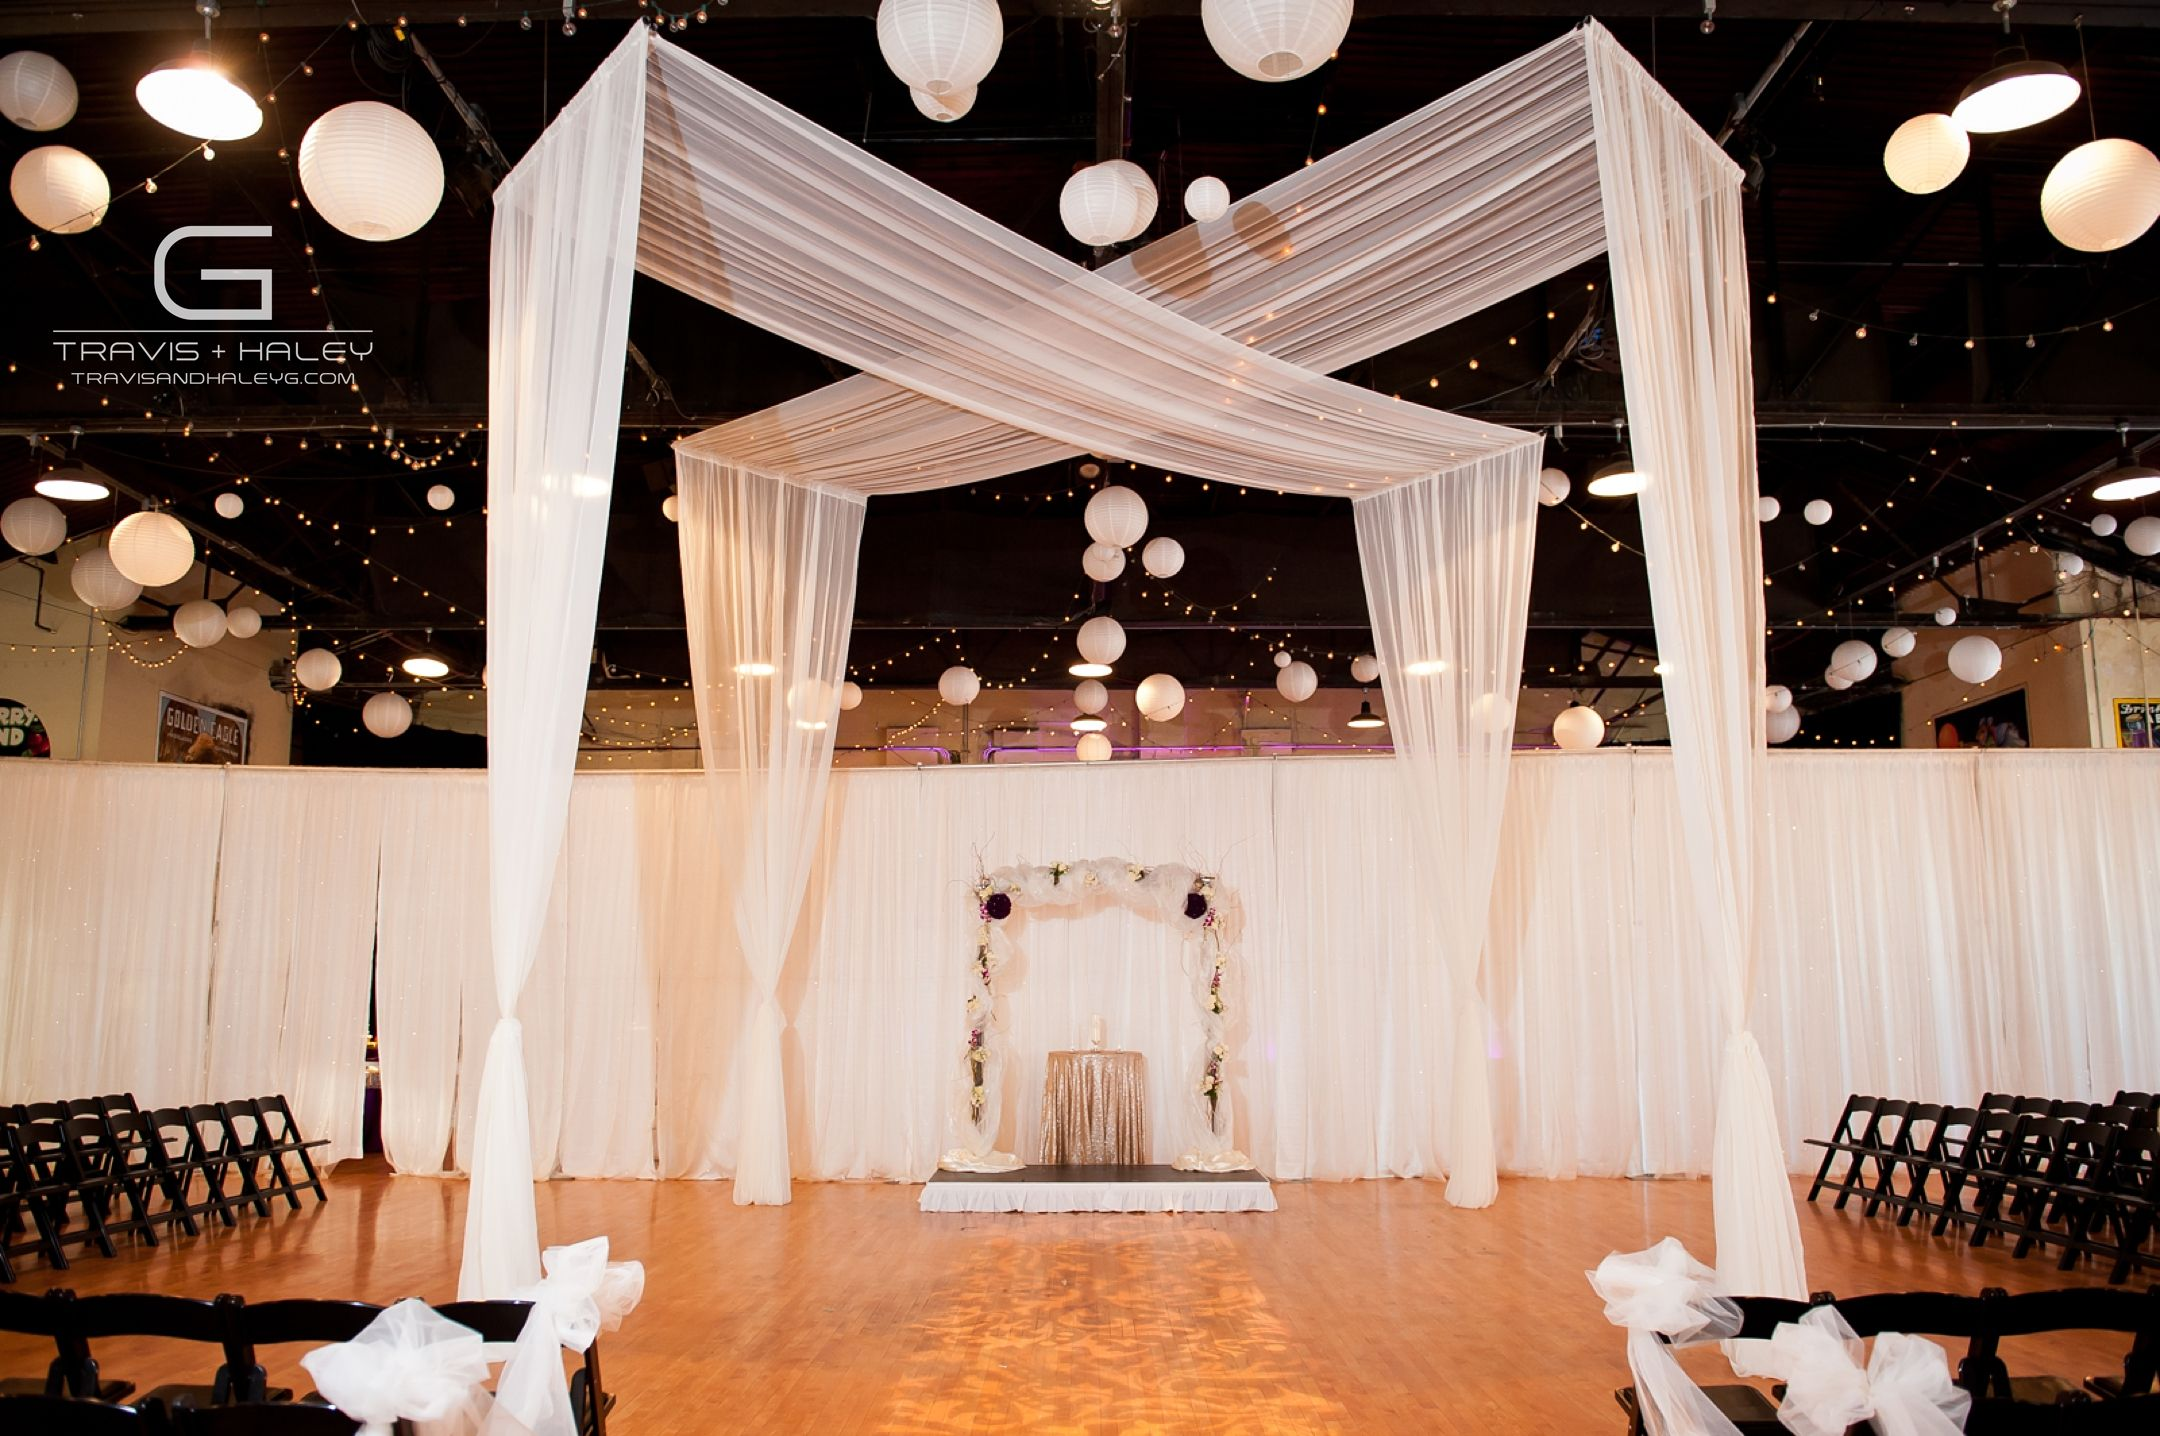 Unusual Design With Canopy Drape So High Above The Backdrop Drapery